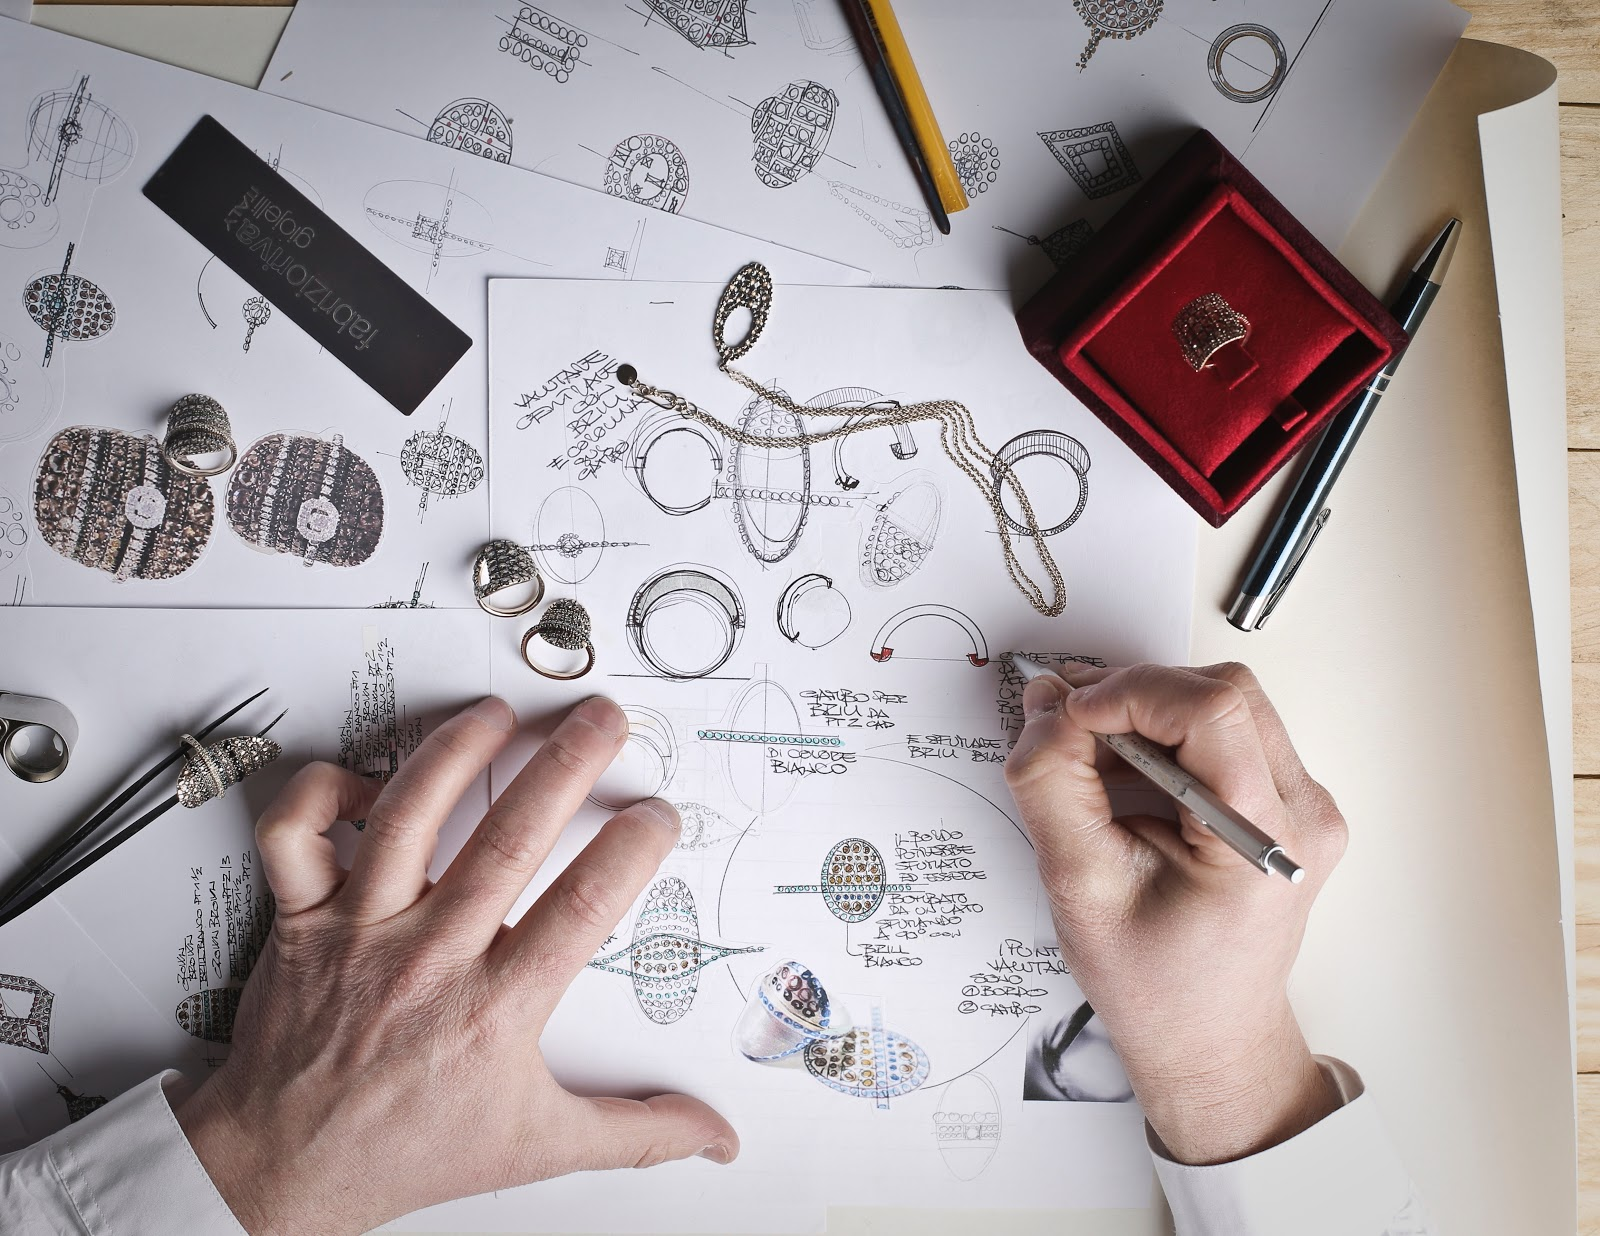 Skills employers look for: Aerial view of hands drawing jewelry